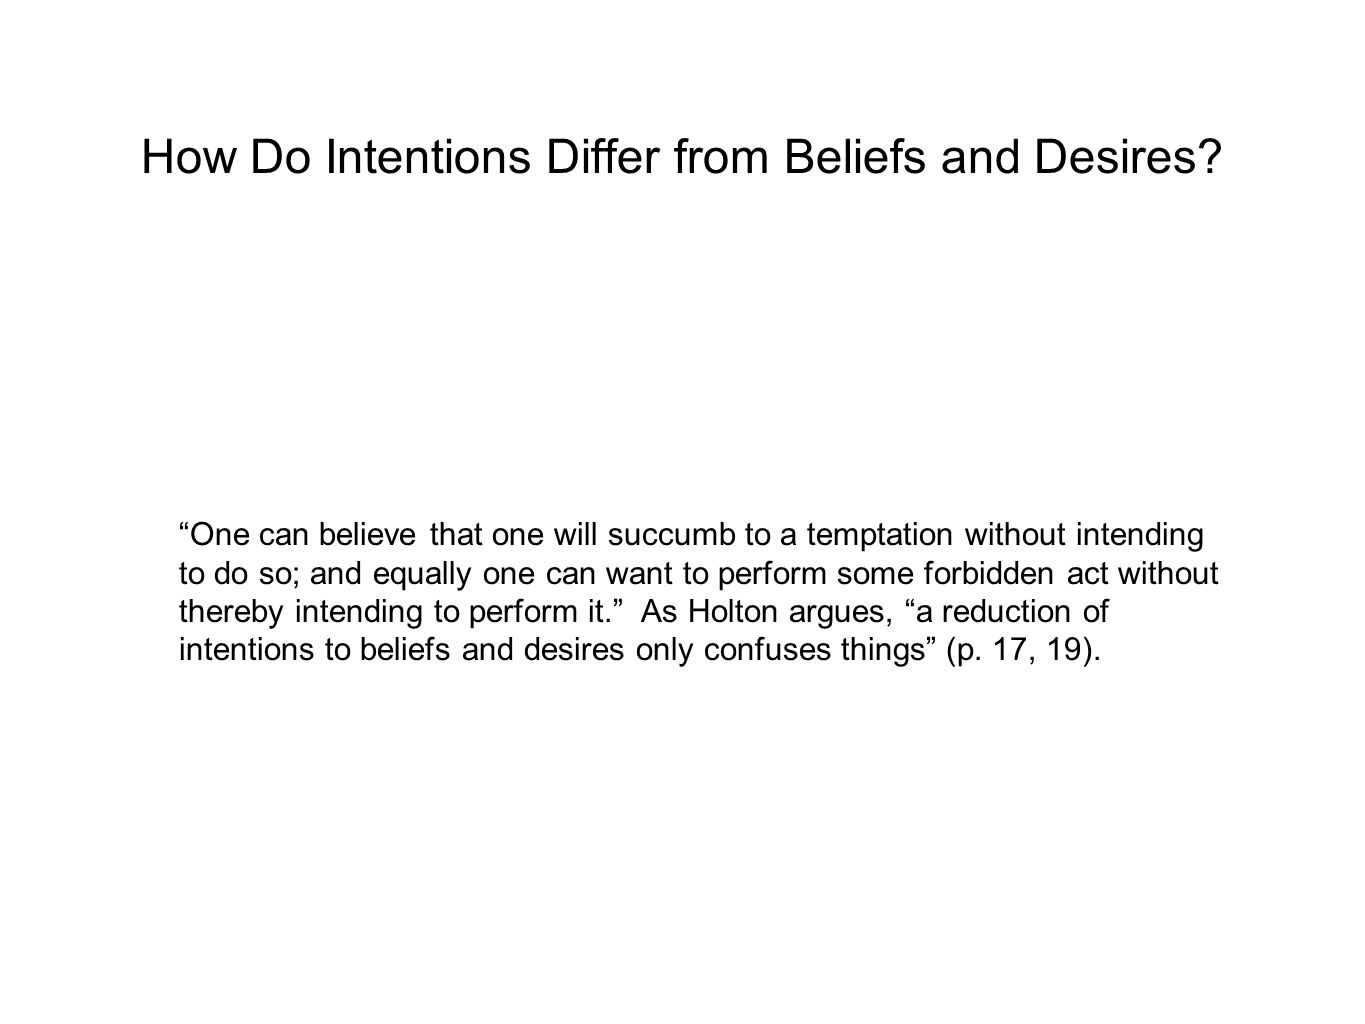 How Do Intentions Differ from Beliefs and Desires